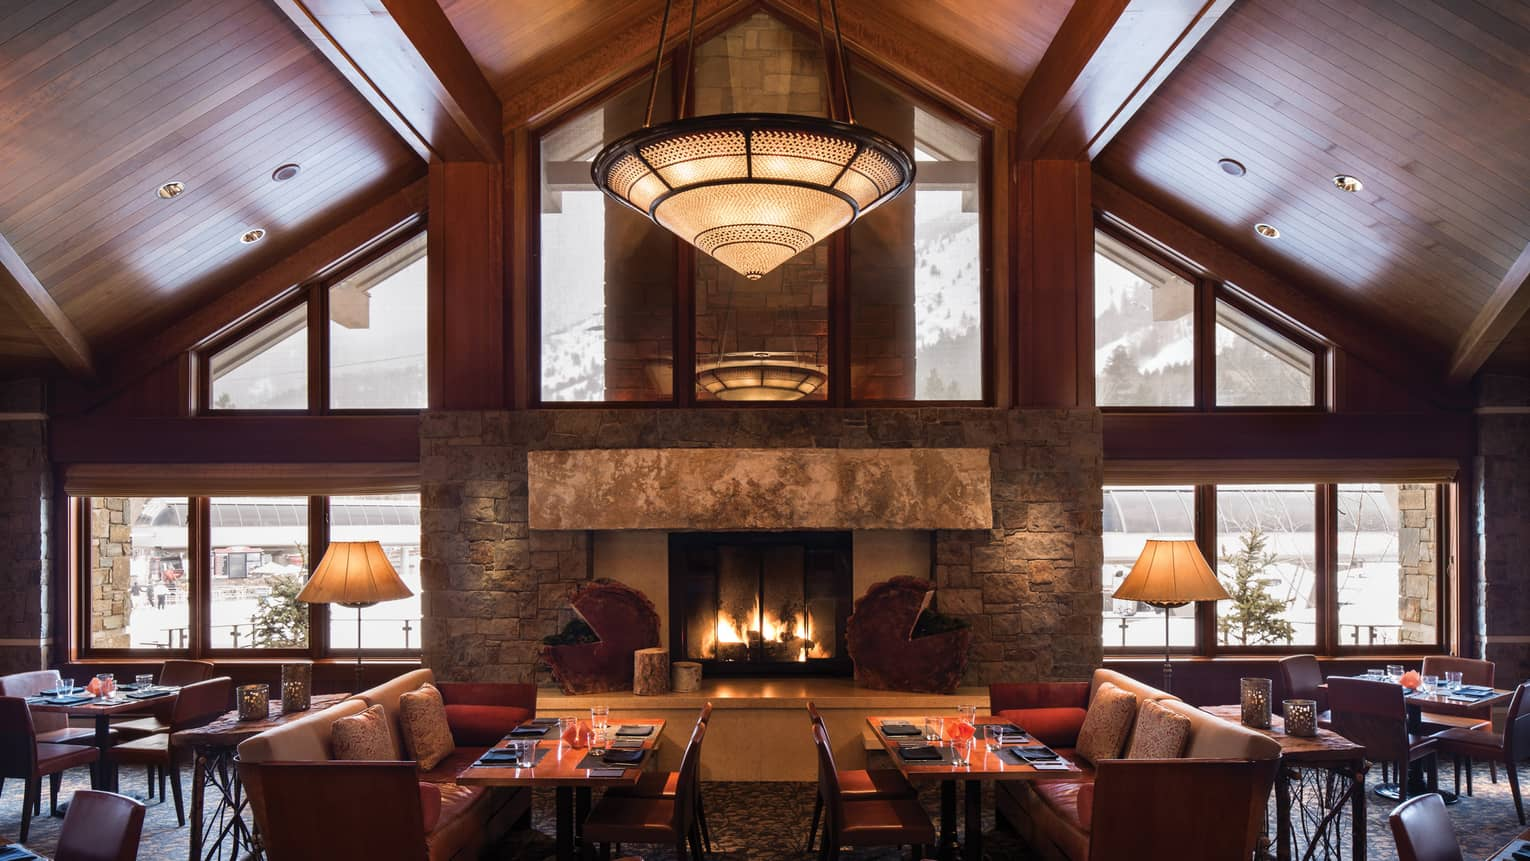 Westbank Grill tall cathedral ceilings, skylight windows over stone fireplace, dining tables, chairs